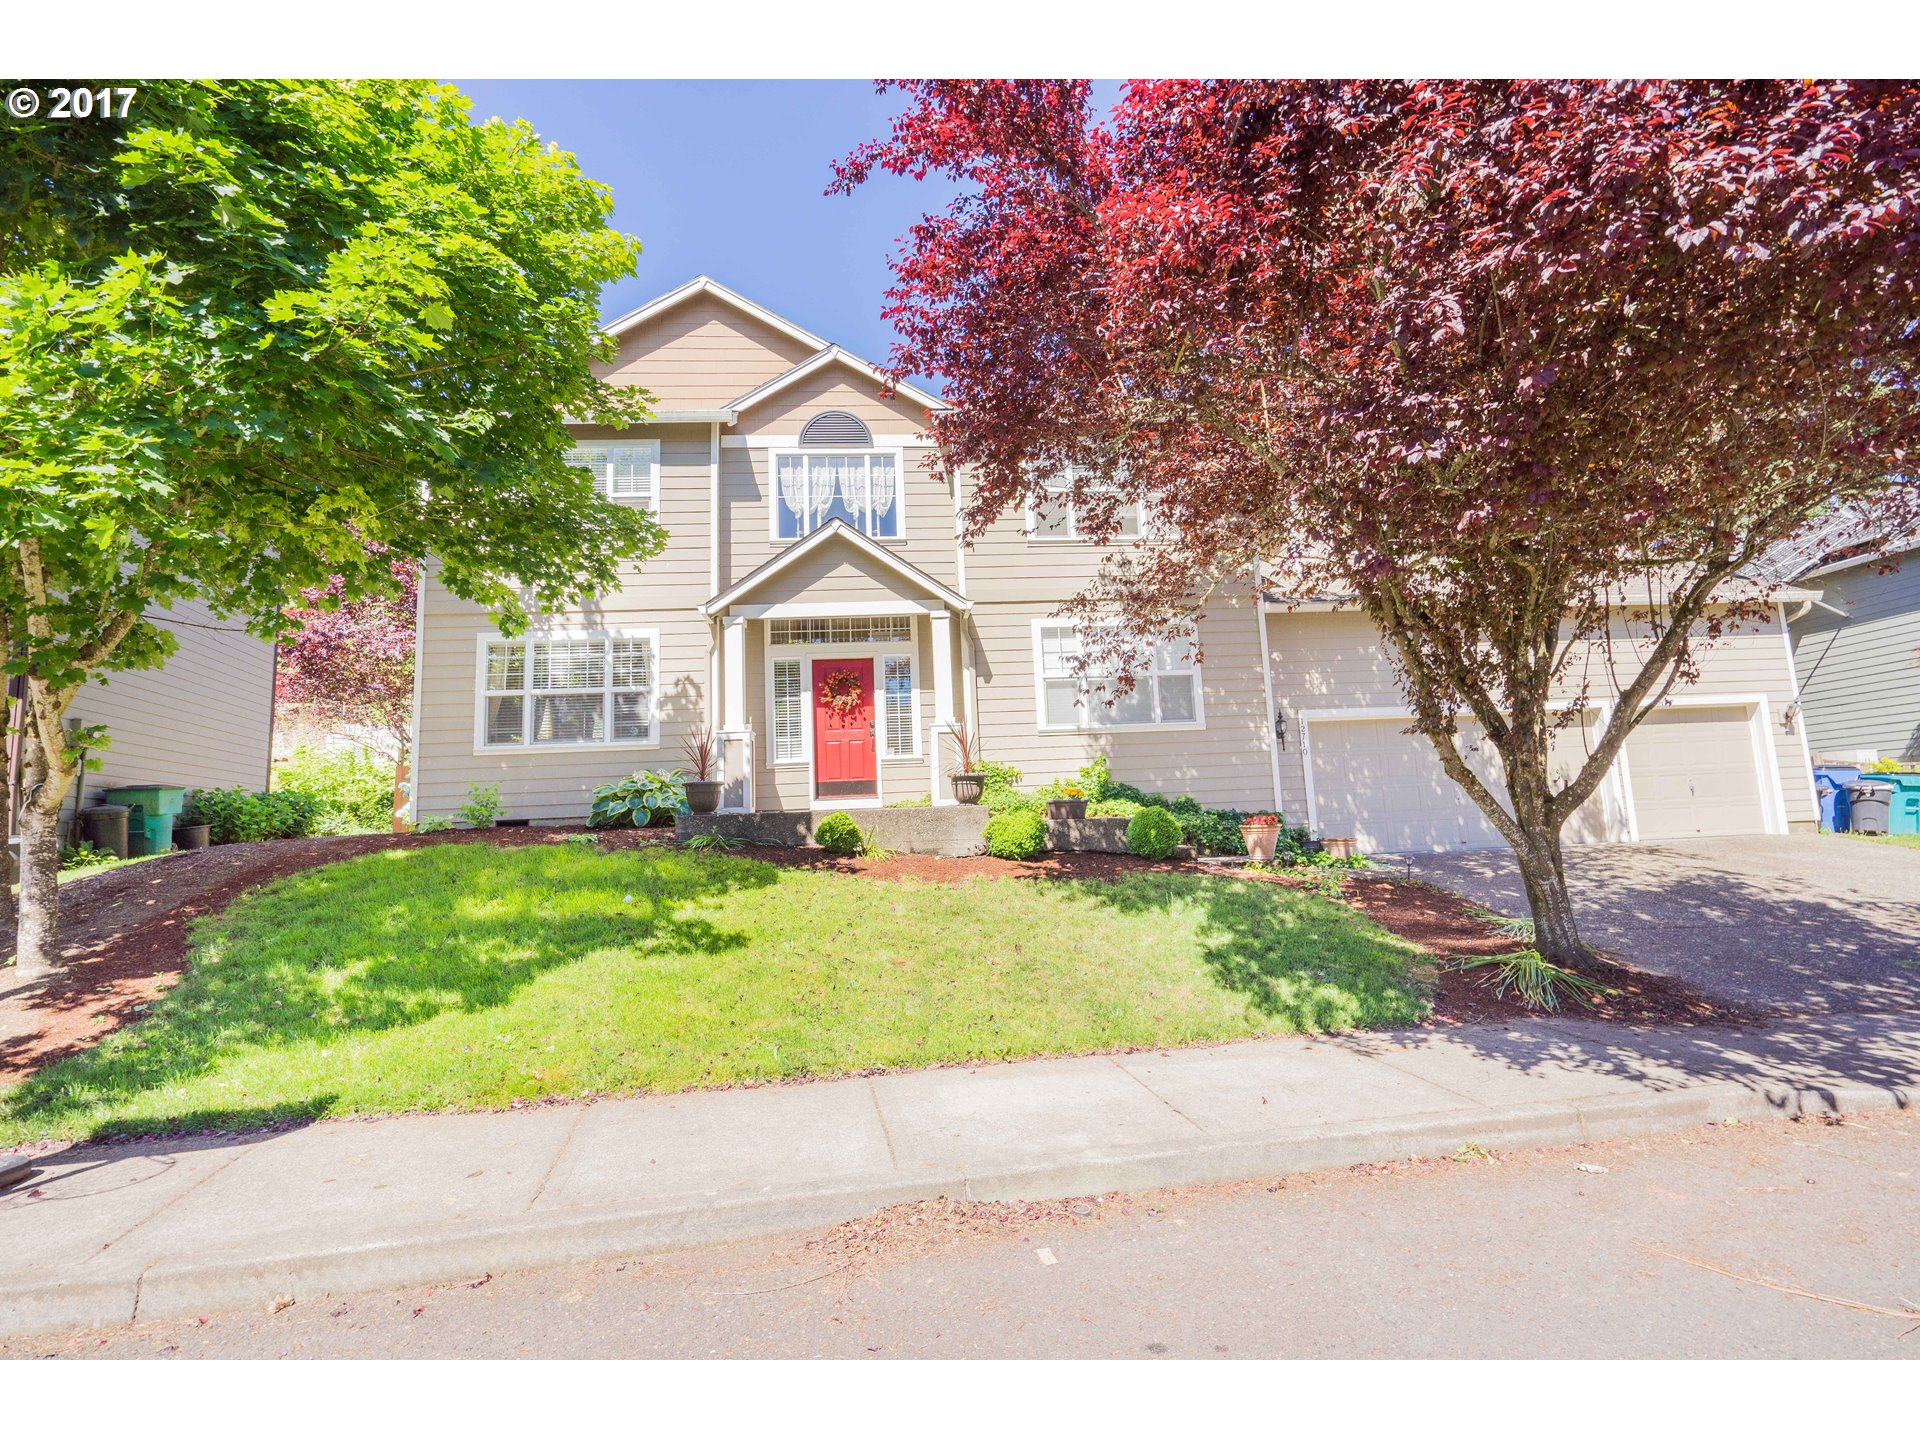 12710 NW 25TH AVE, Vancouver, WA 98685